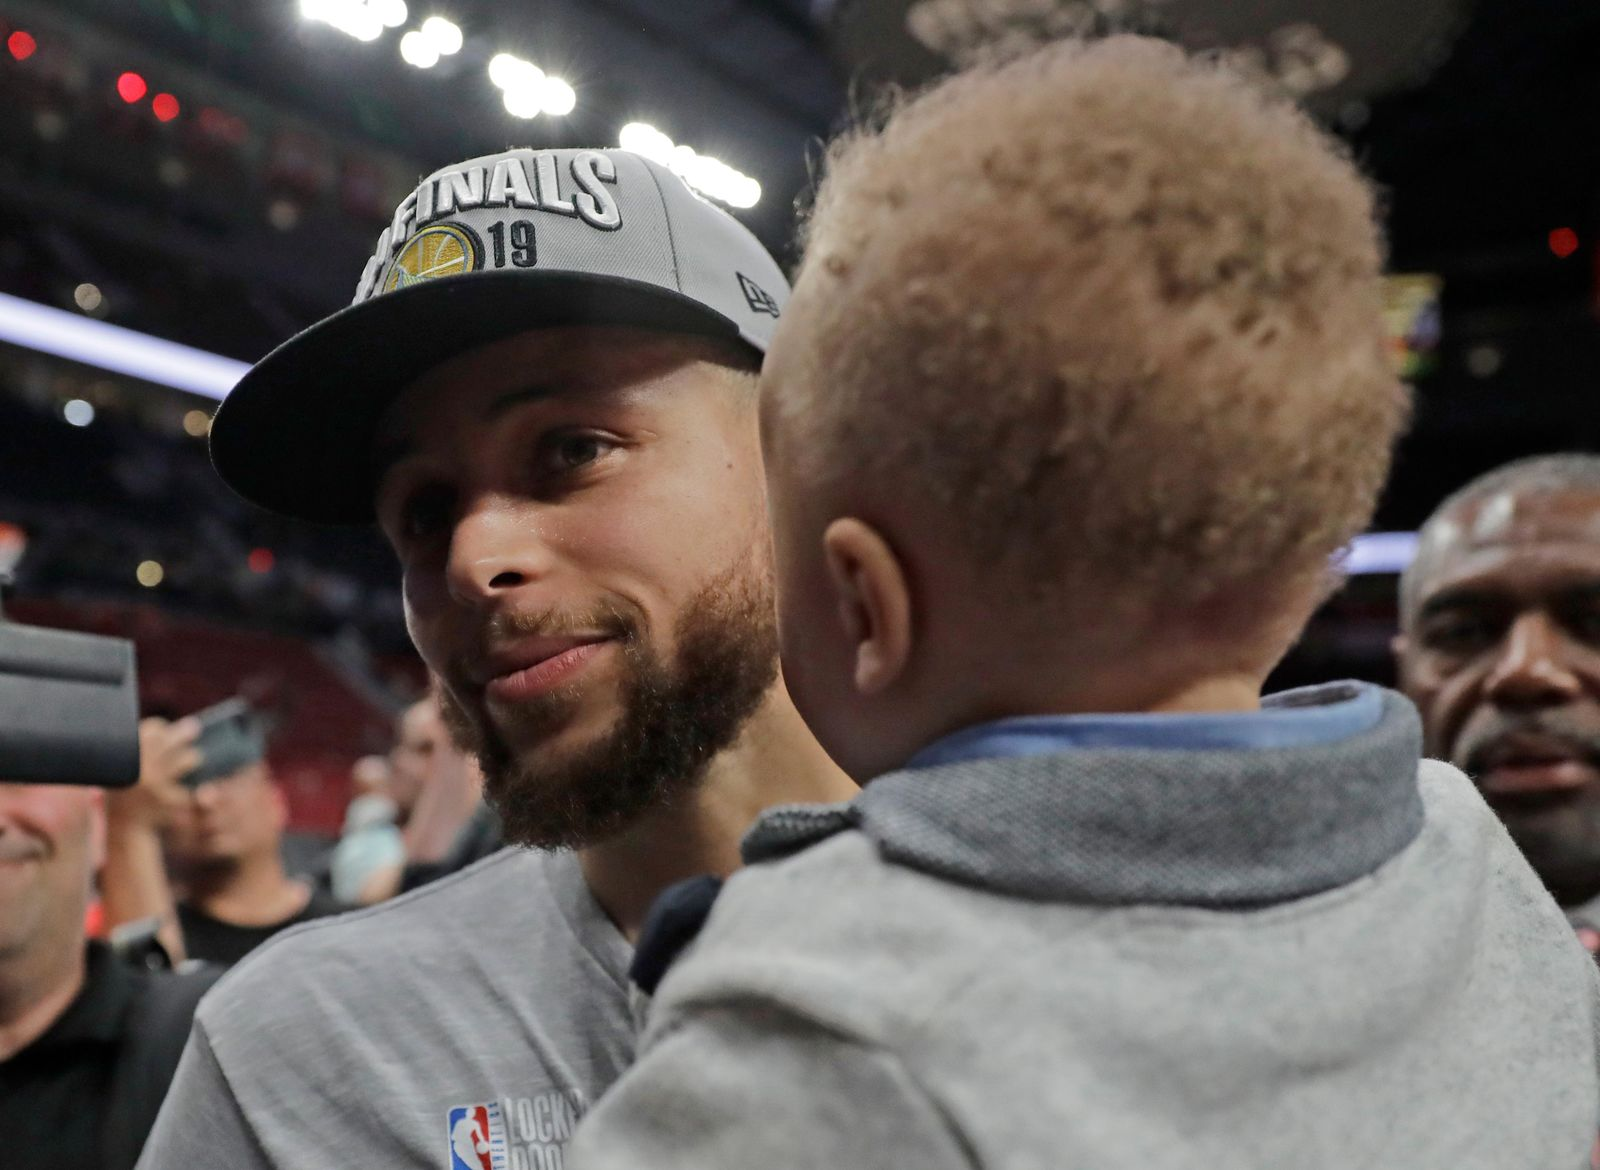 Golden State Warriors guard Stephen Curry holds his son Canon as he walks off the court after Game 4 of the NBA basketball playoffs Western Conference finals against the Portland Trail Blazers, Monday, May 20, 2019, in Portland, Ore. The Warriors won 119-117 in overtime. (AP Photo/Ted S. Warren)